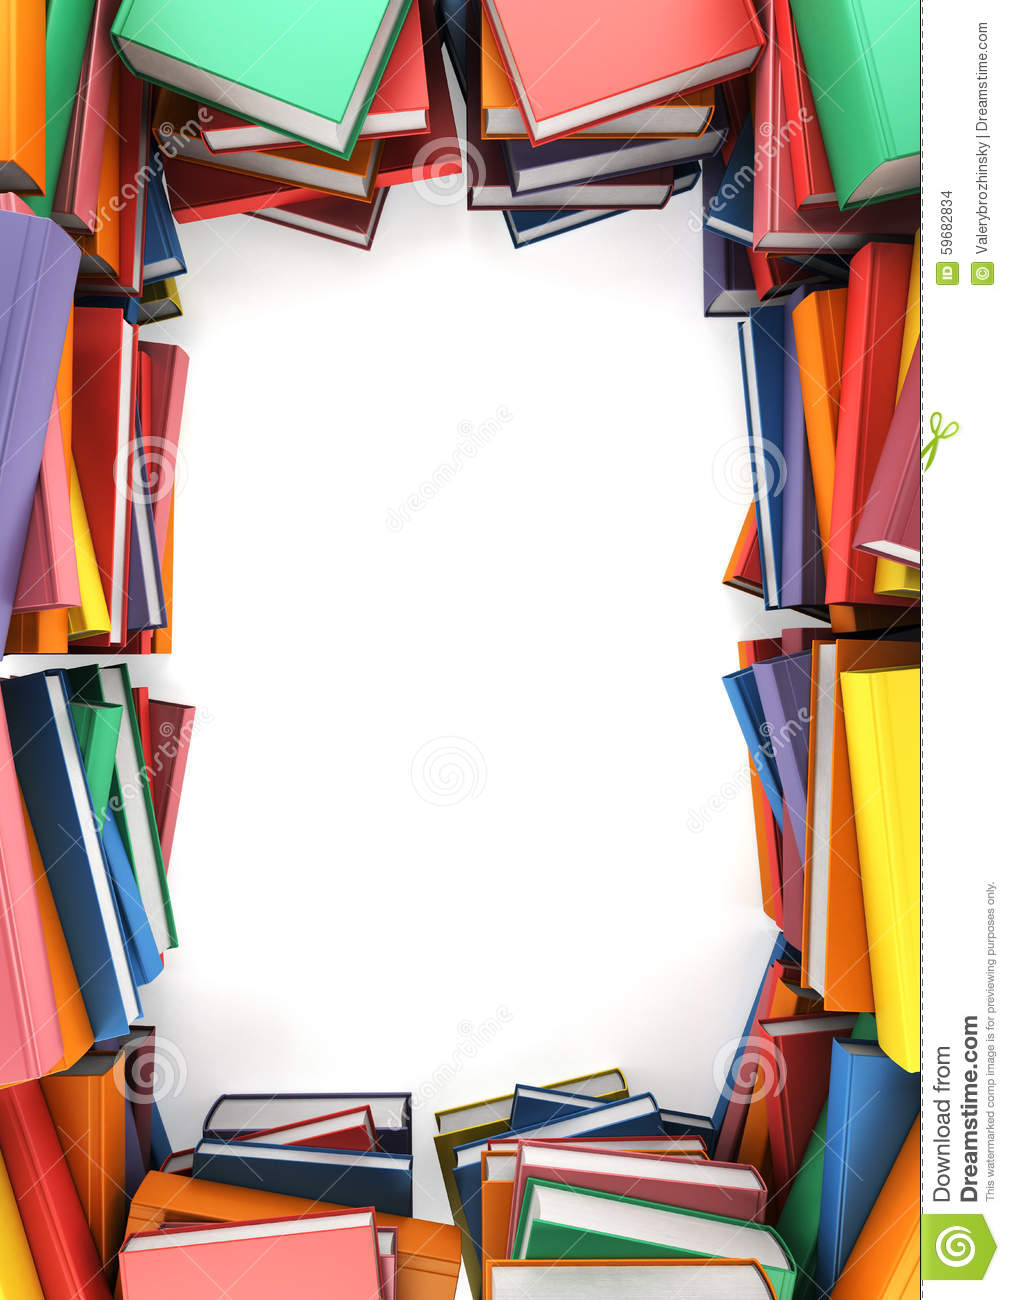 The Stacks Of Books That Form A Frame Stock Illustration